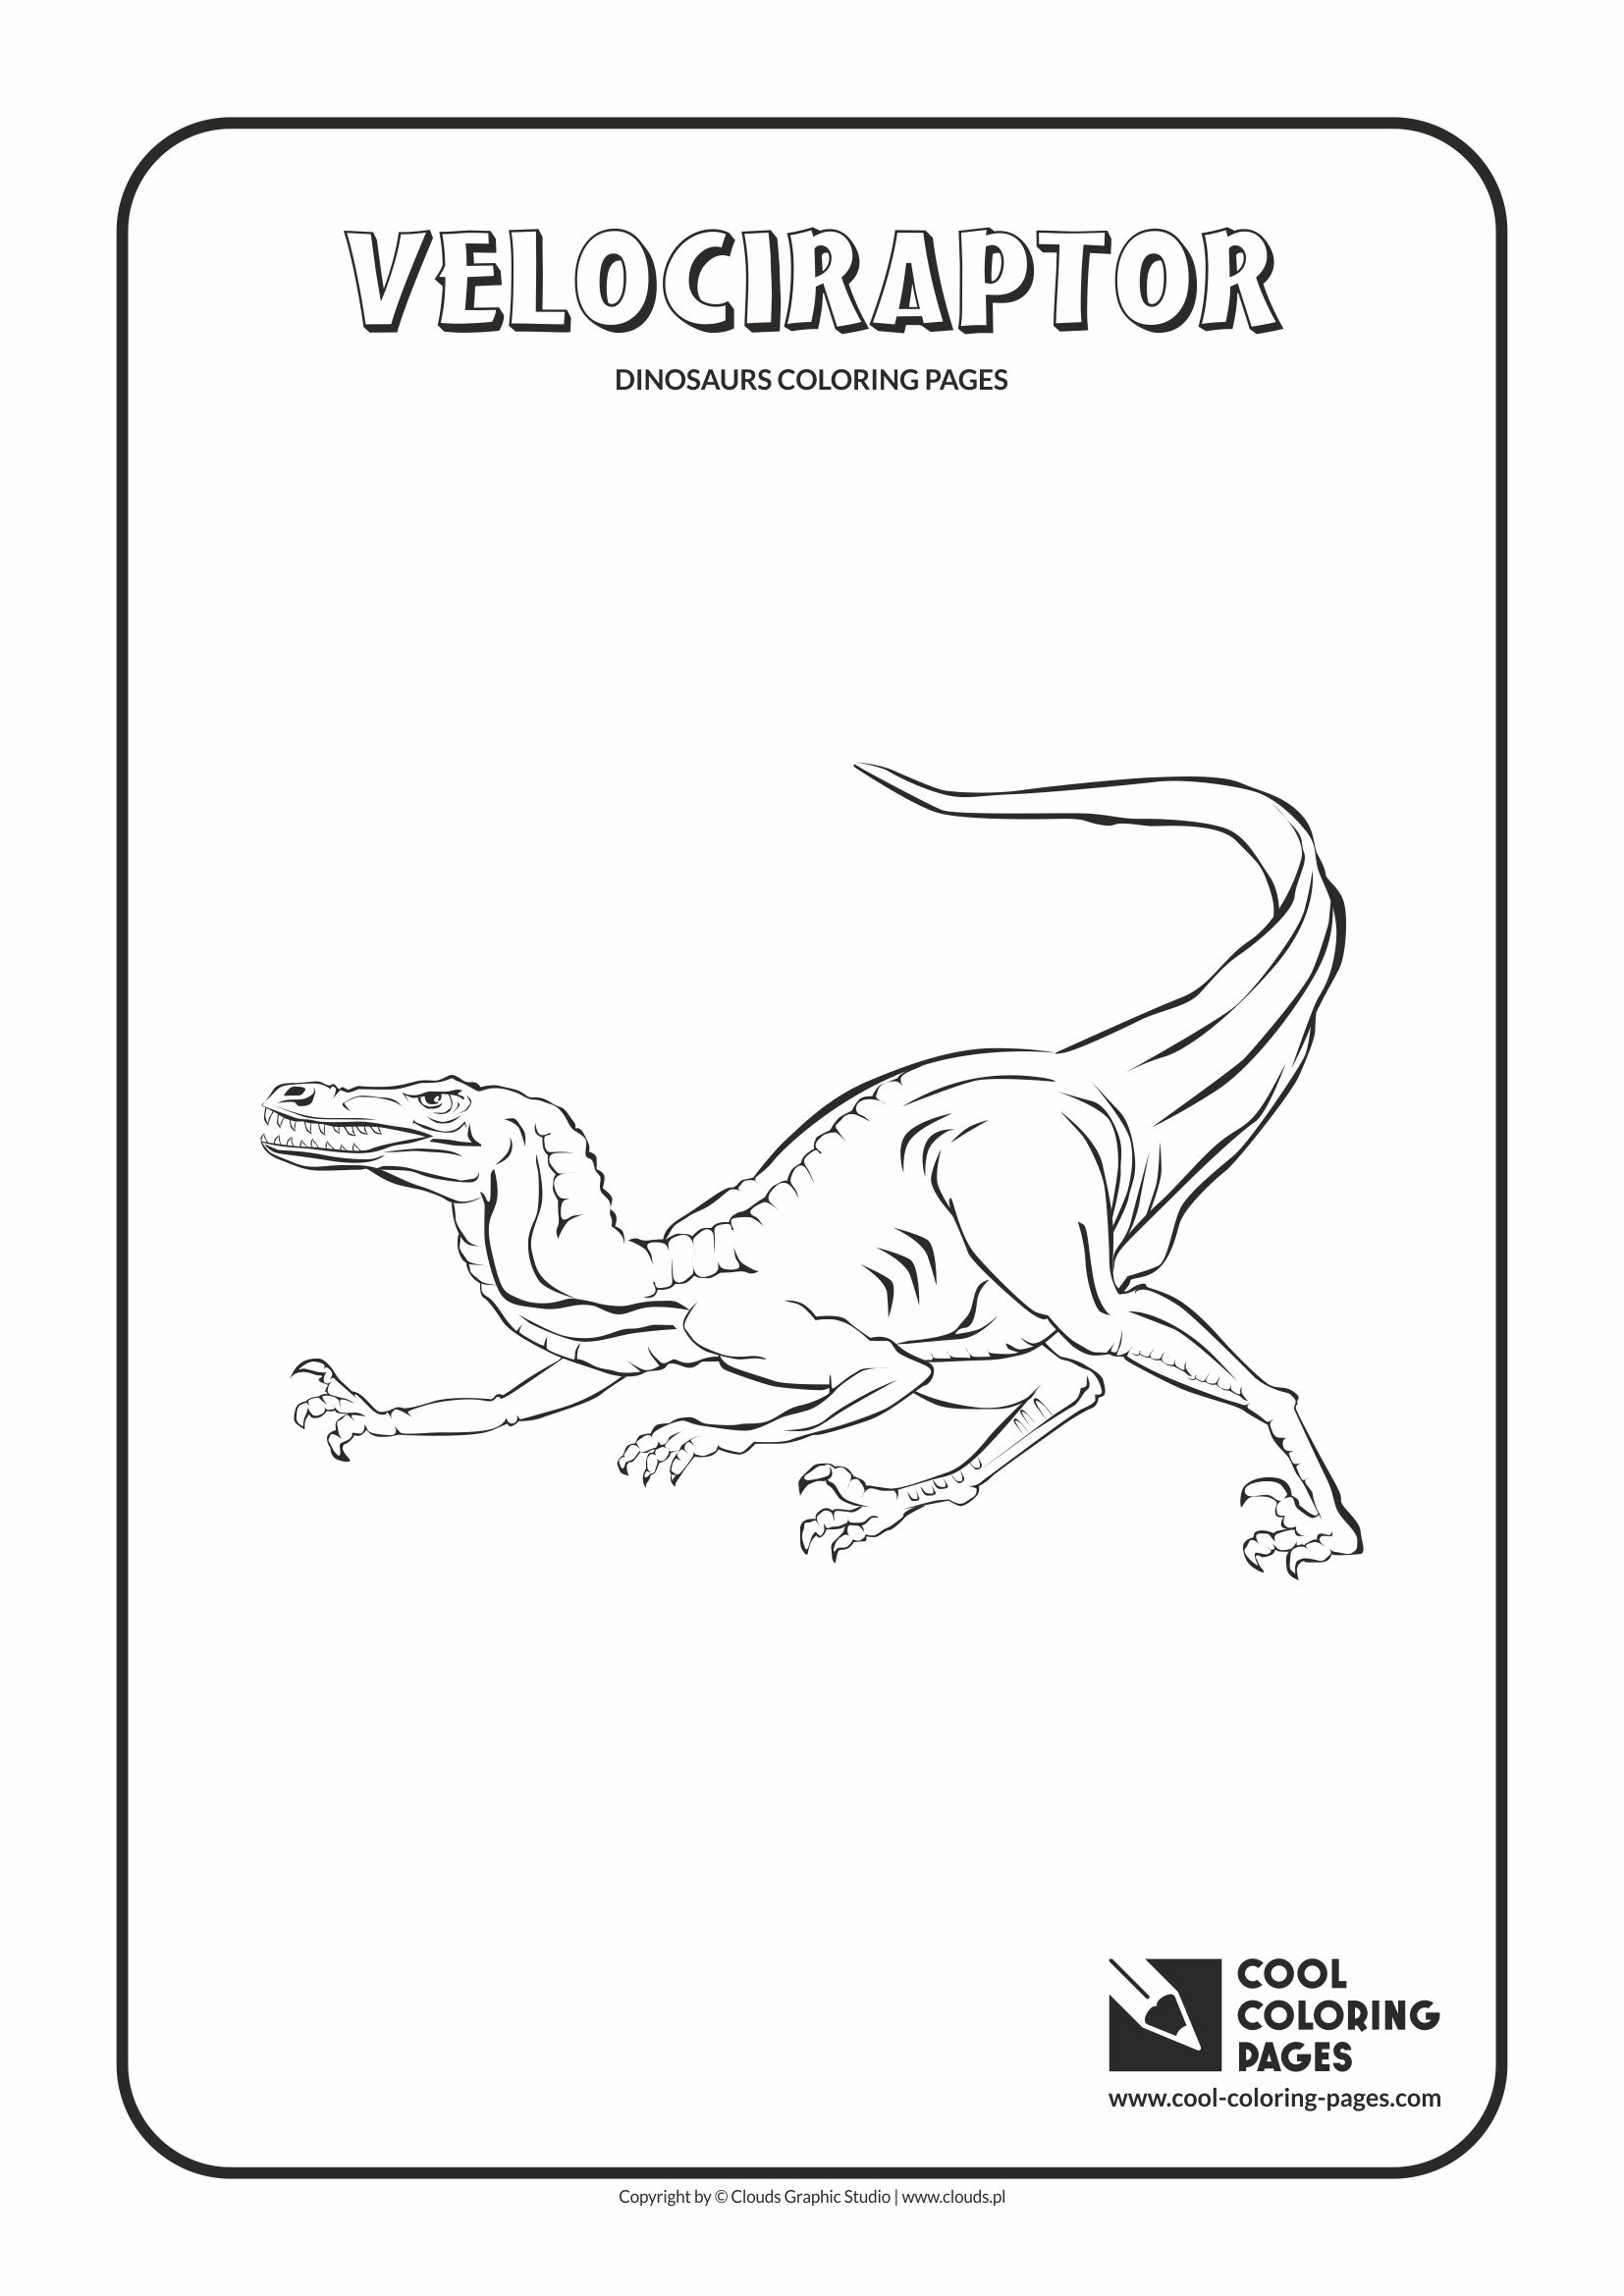 Cool Coloring Pages Dinosaurs